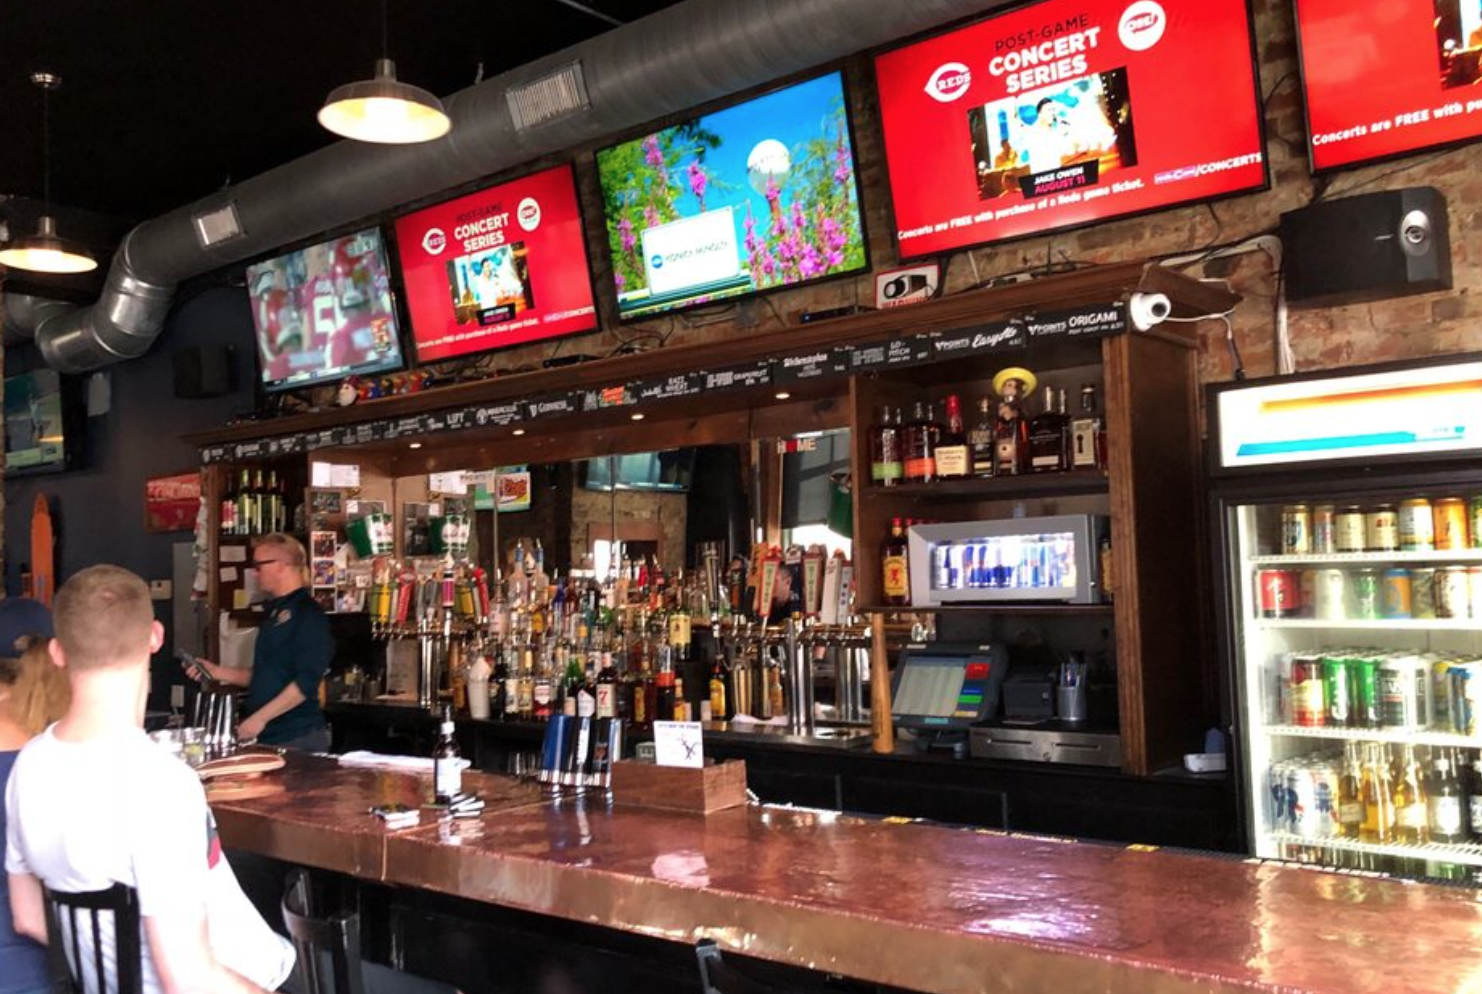 Sports bar with screens and a fridge full of beer